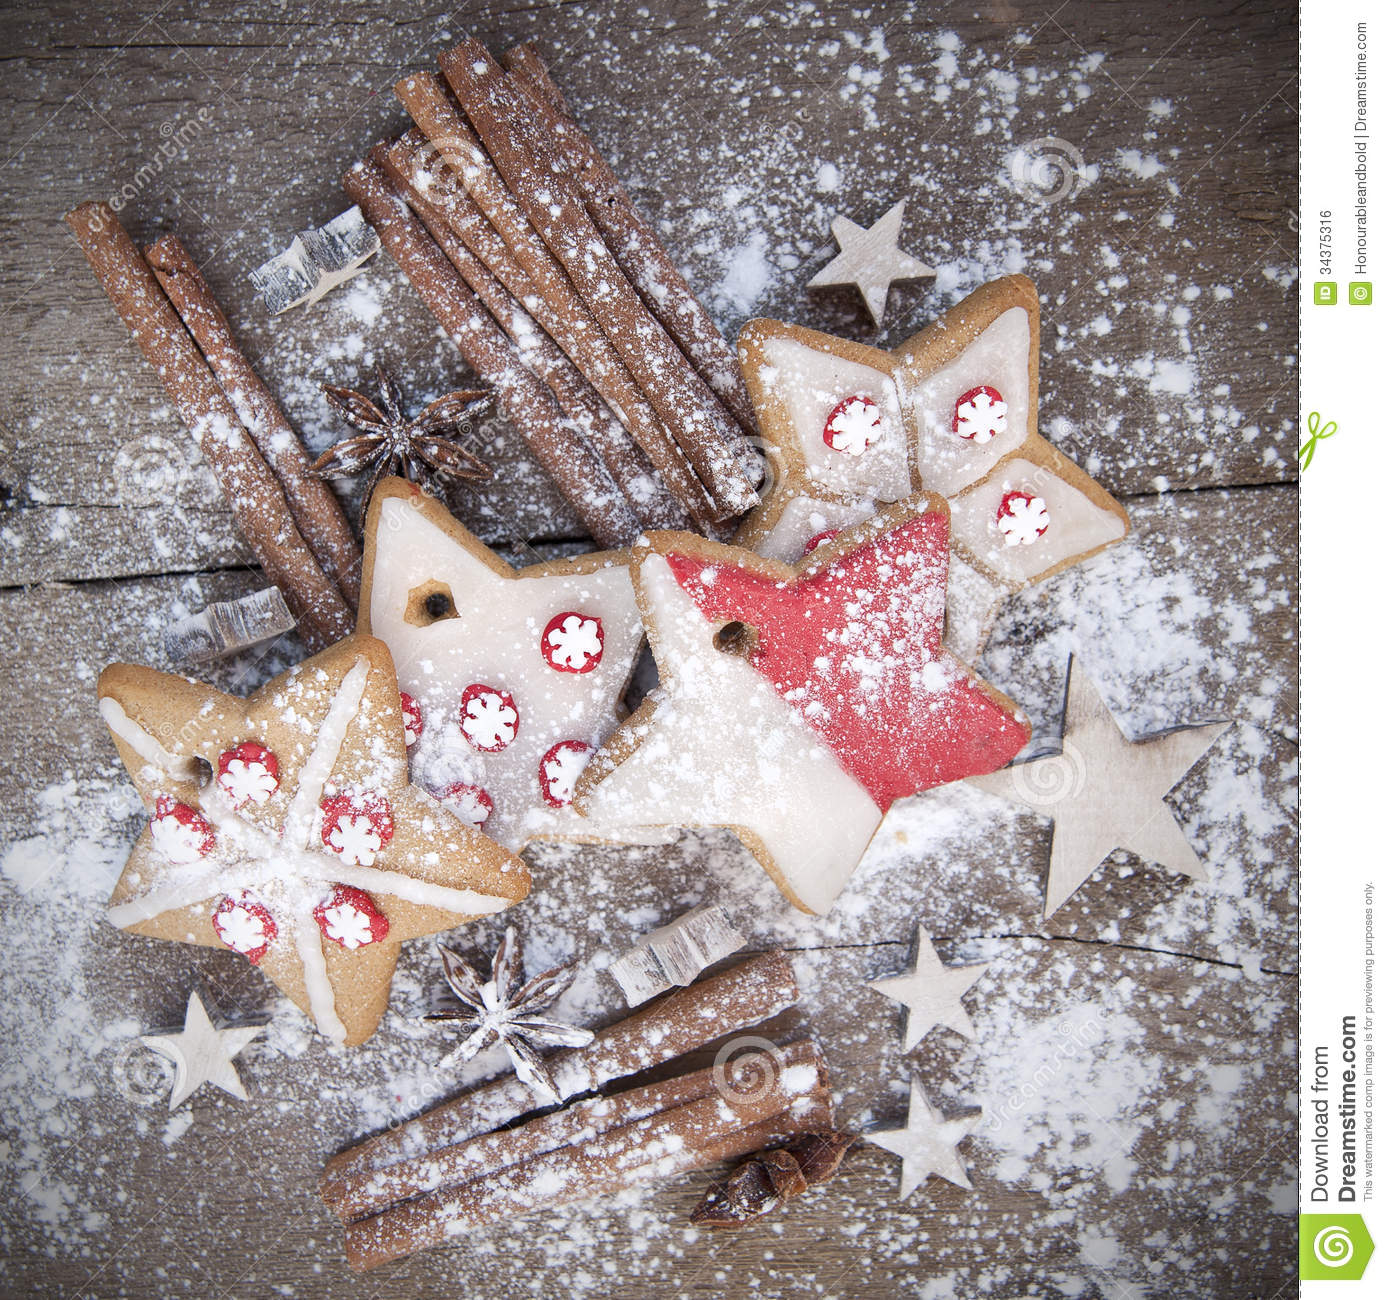 Warm Image Of Christmas Foods On Rustic Style Wooden